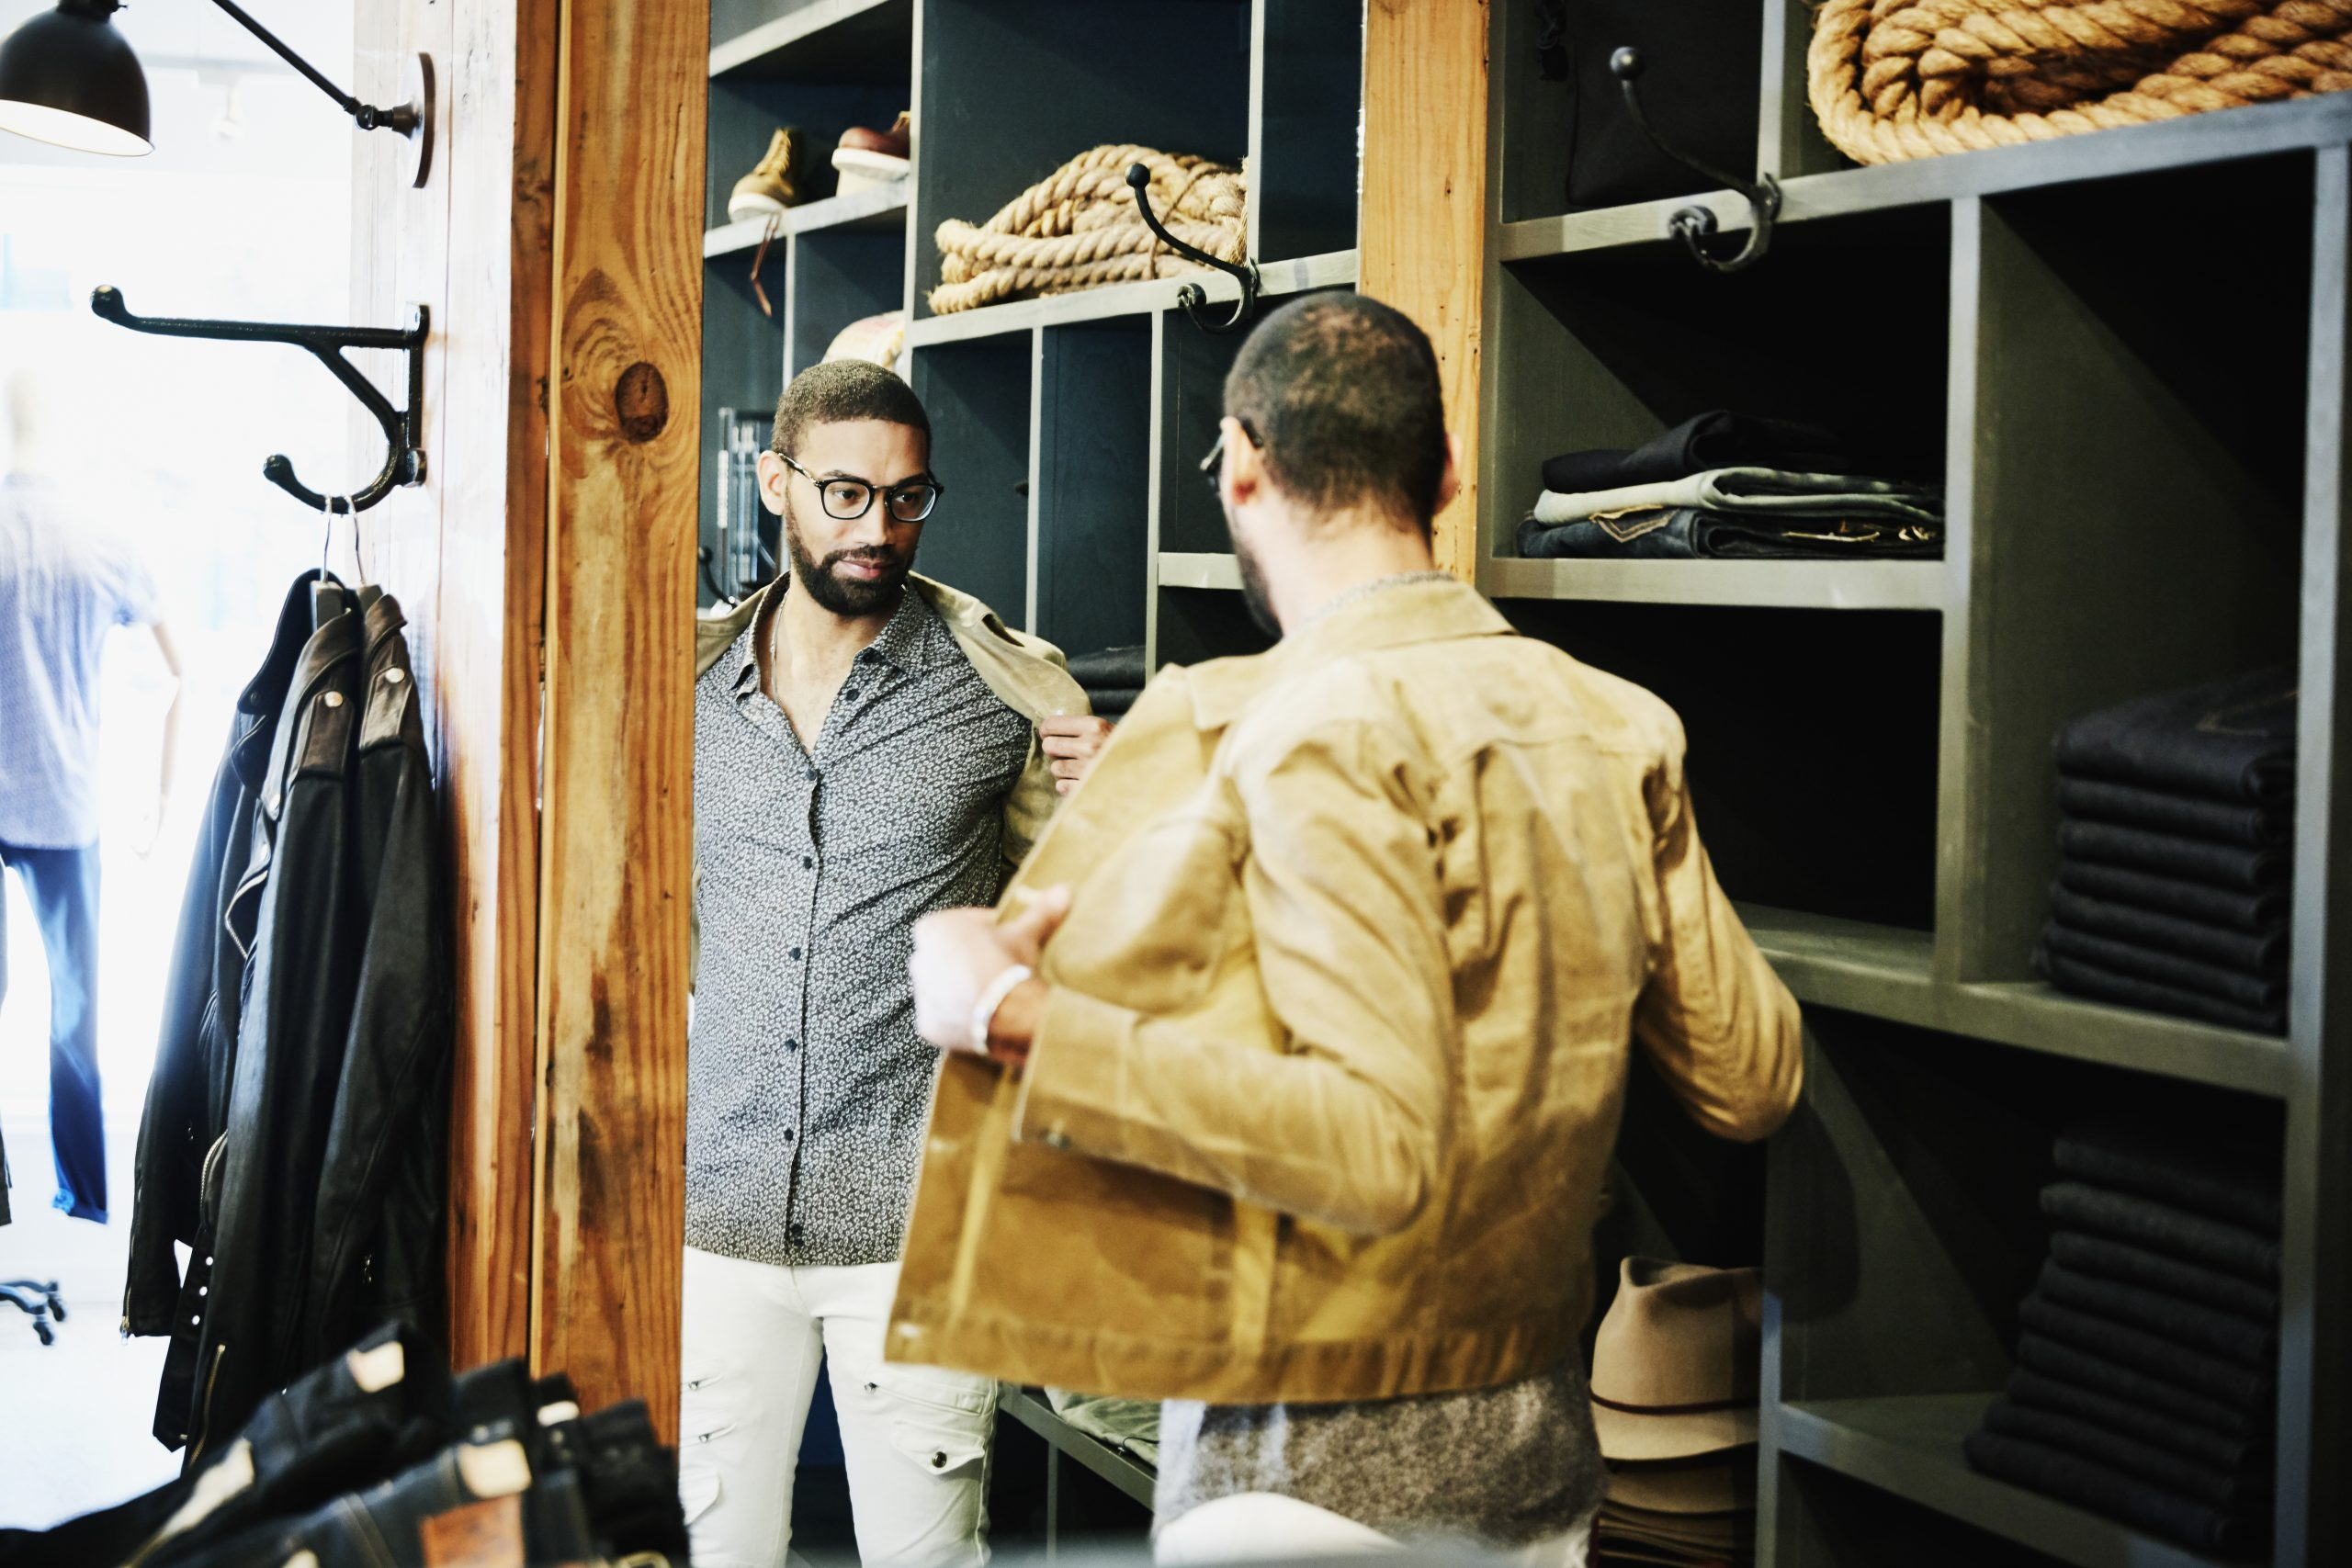 5 challenges retailers face in giving customers what they want.